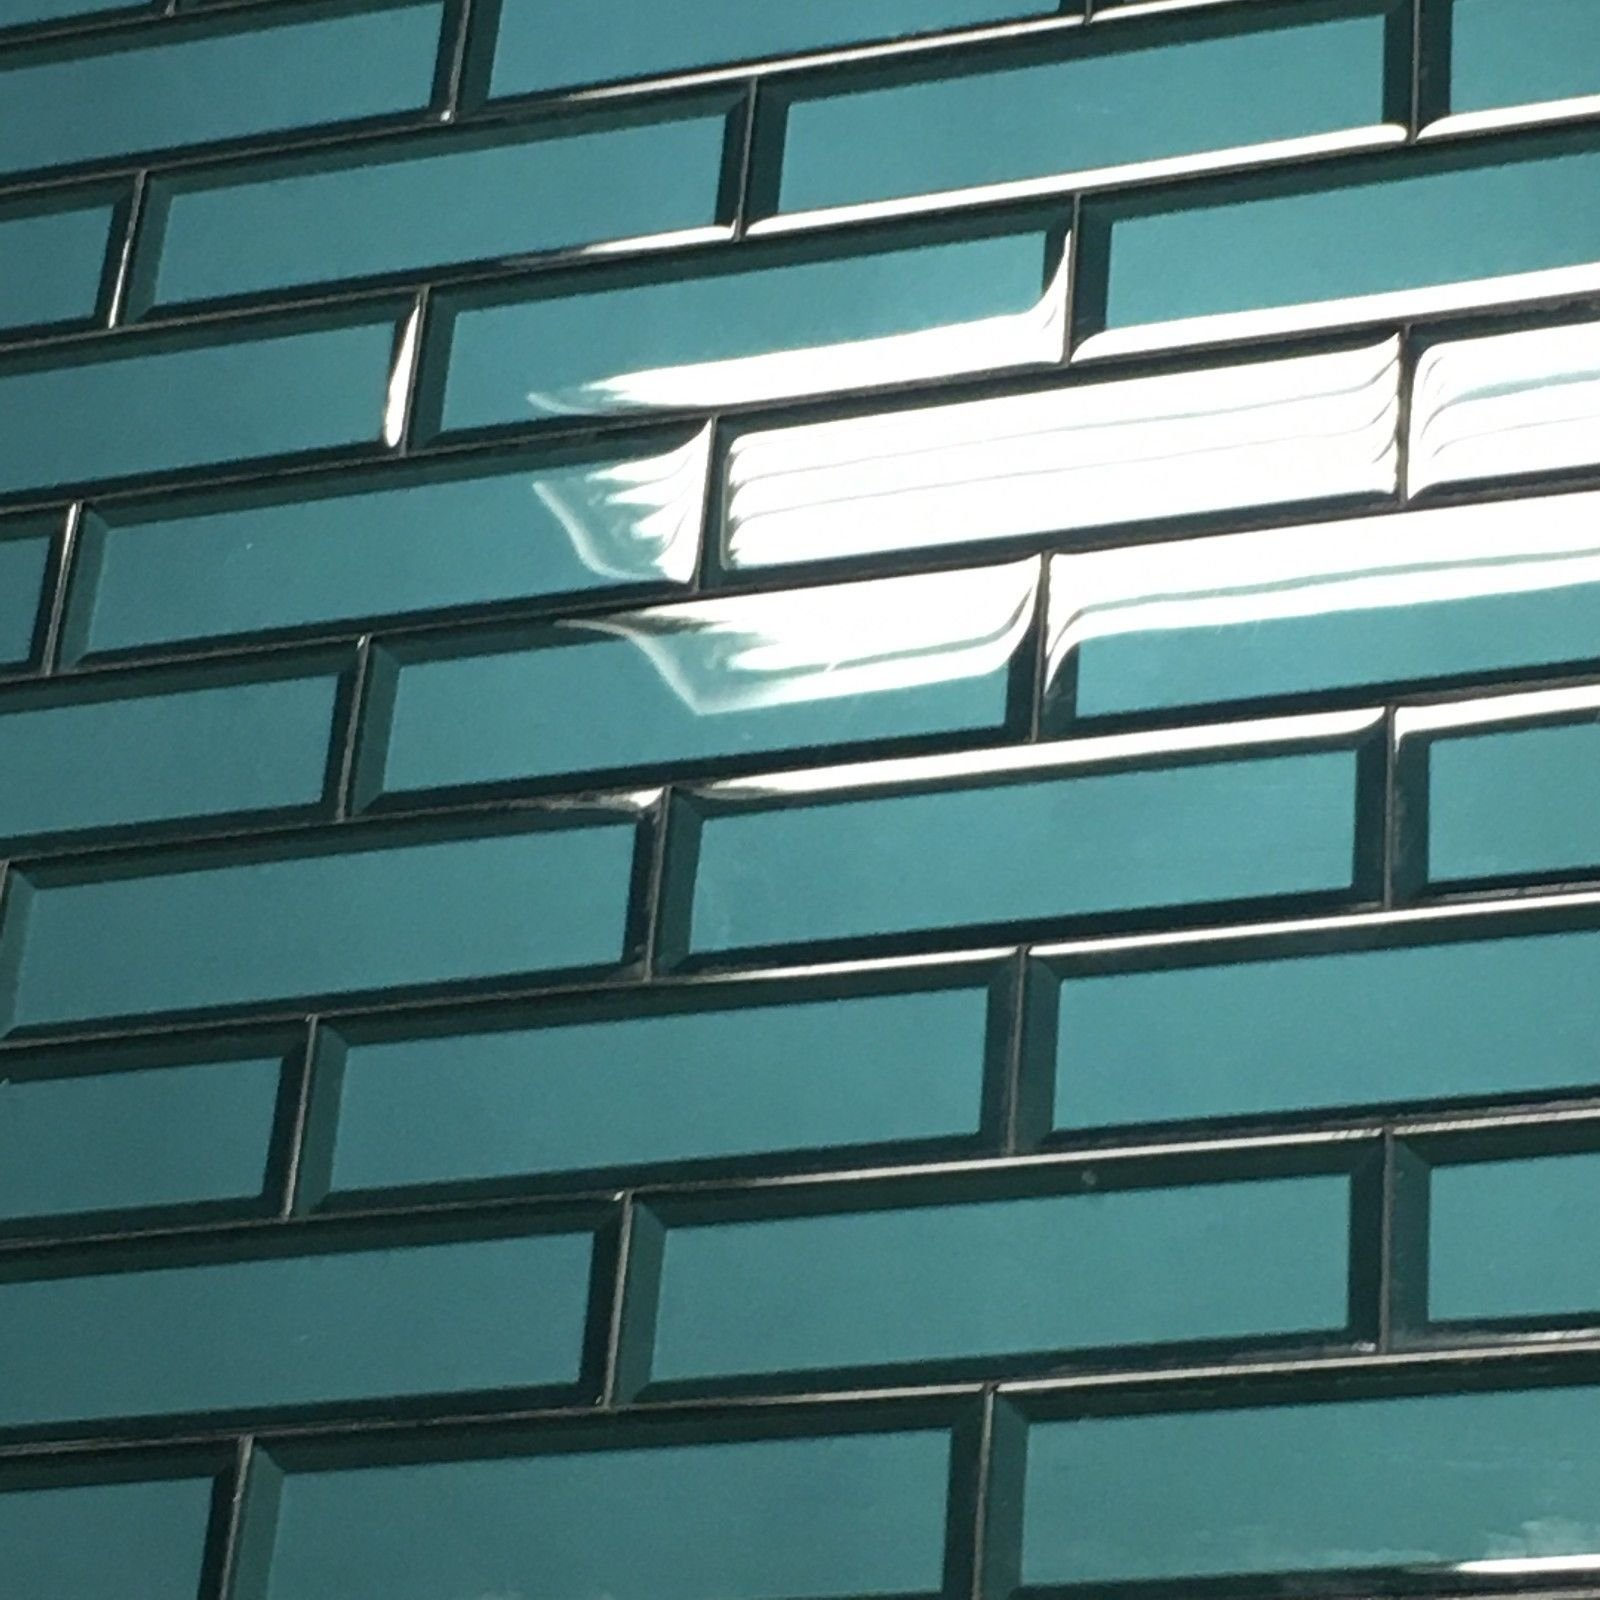 2.5 x 8 Temptation Teal Glass Tile 3D Backsplash Wall Bath (5 piece PACK)